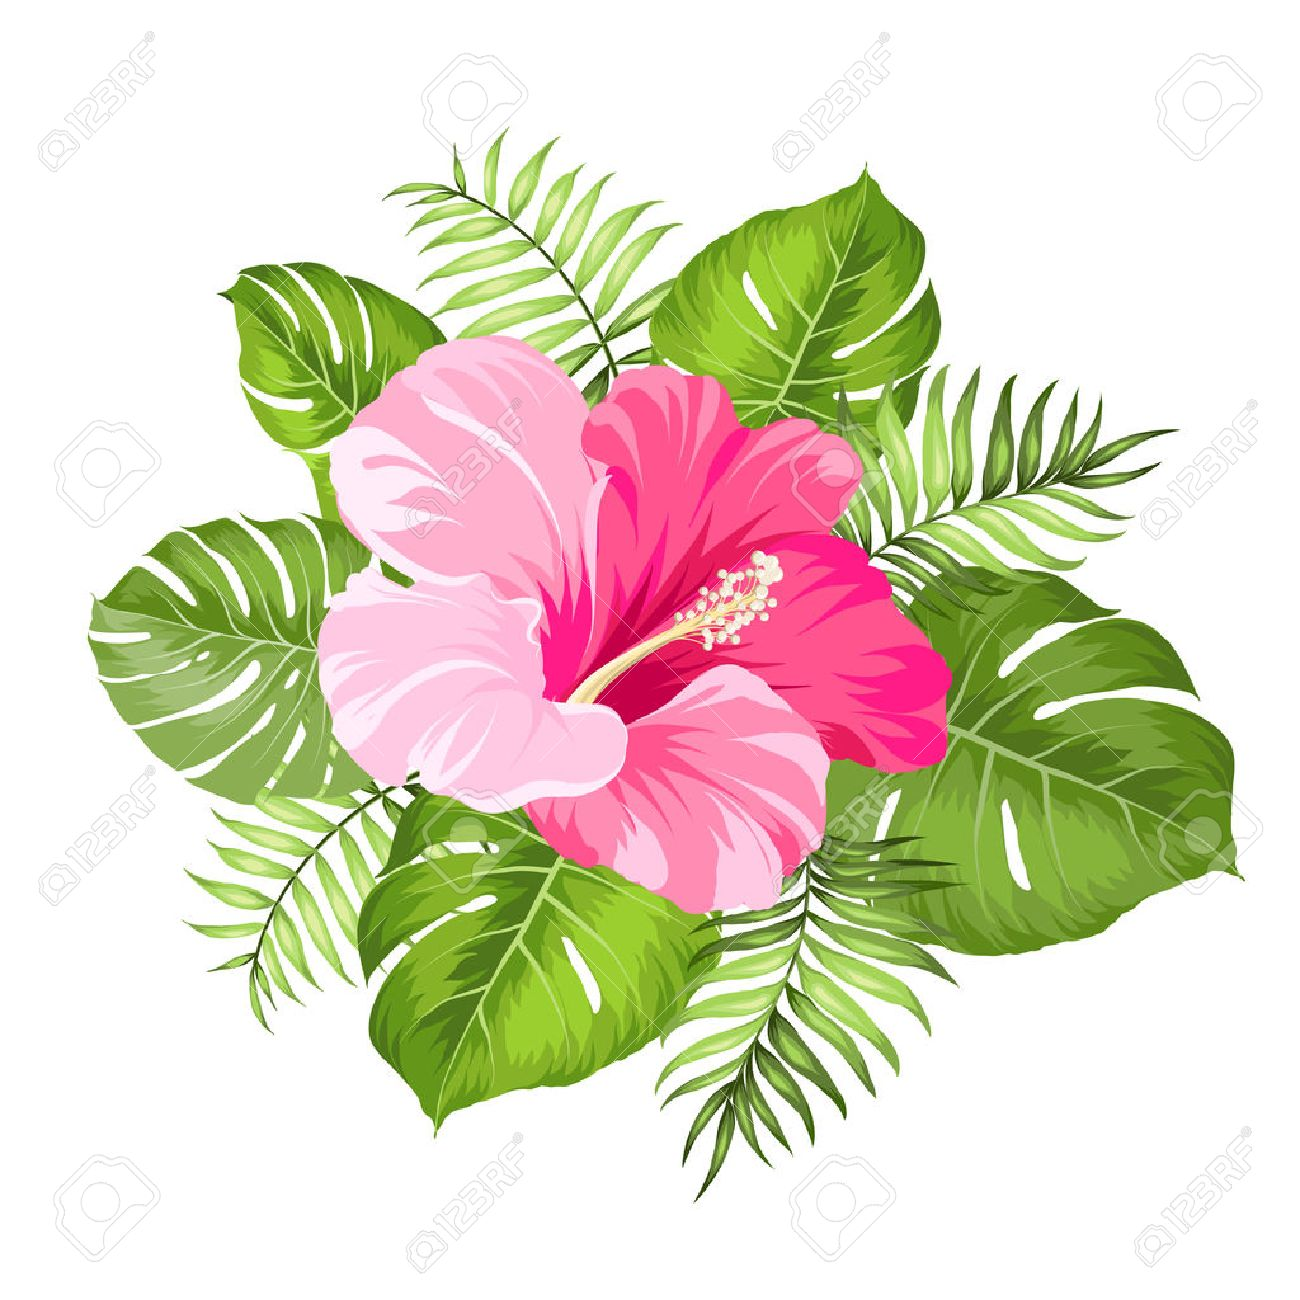 tropical flower isolated over white background vector illustration